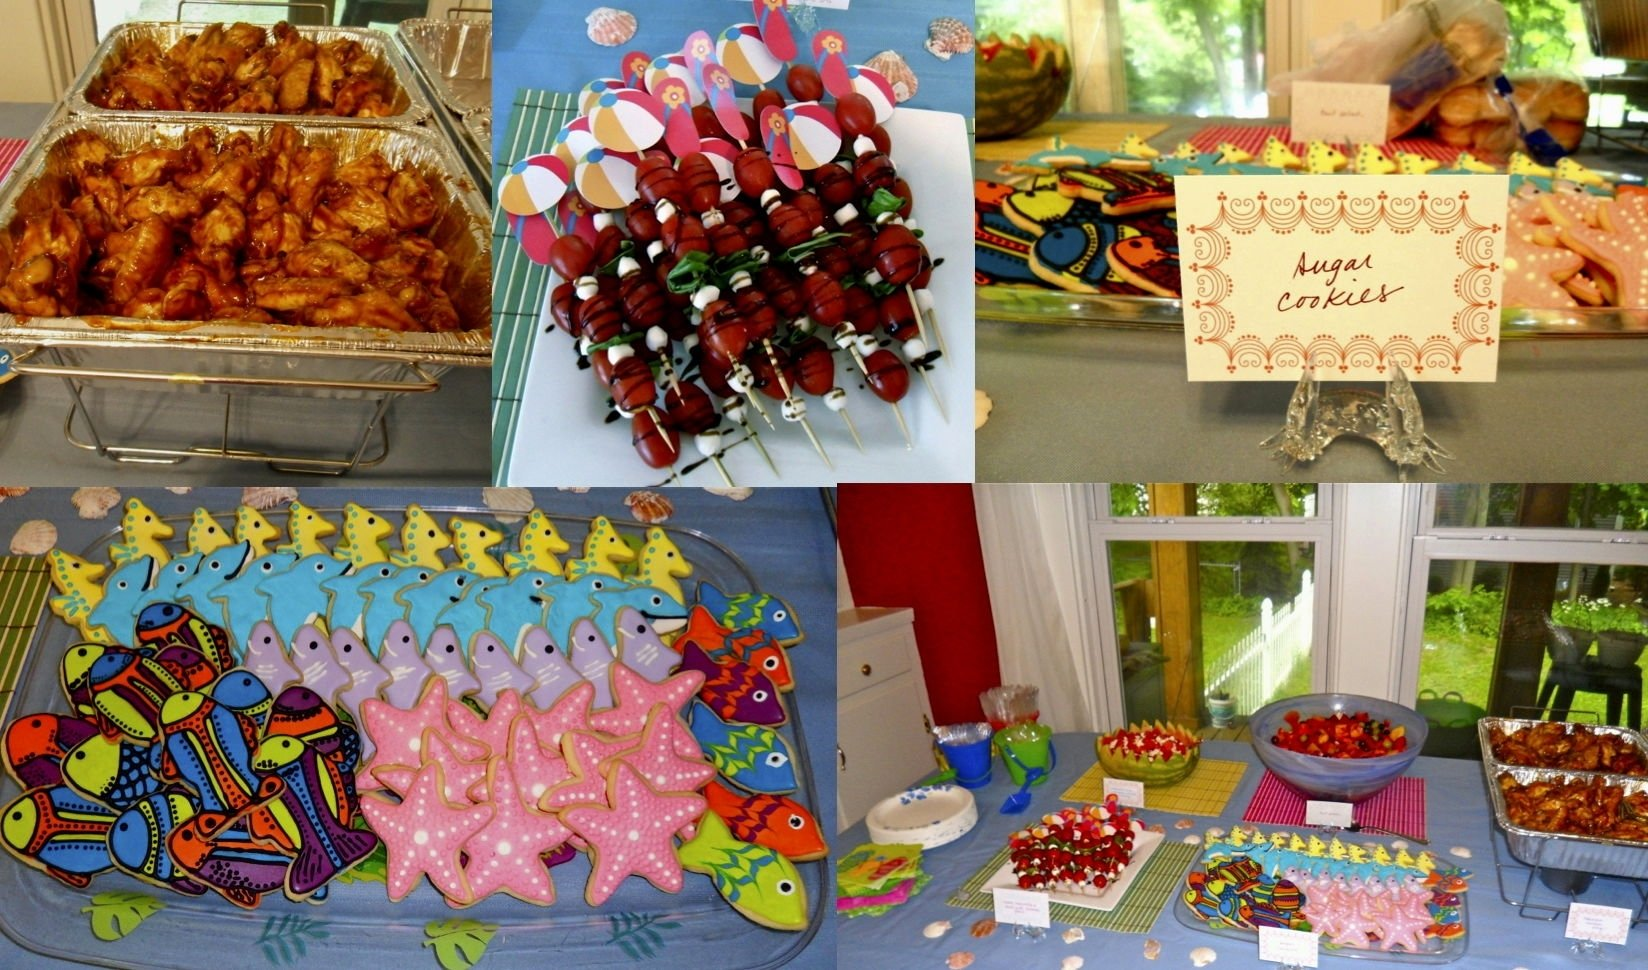 10 Nice Food Ideas For The Beach beach party food ideas birthday decorating of party 2021